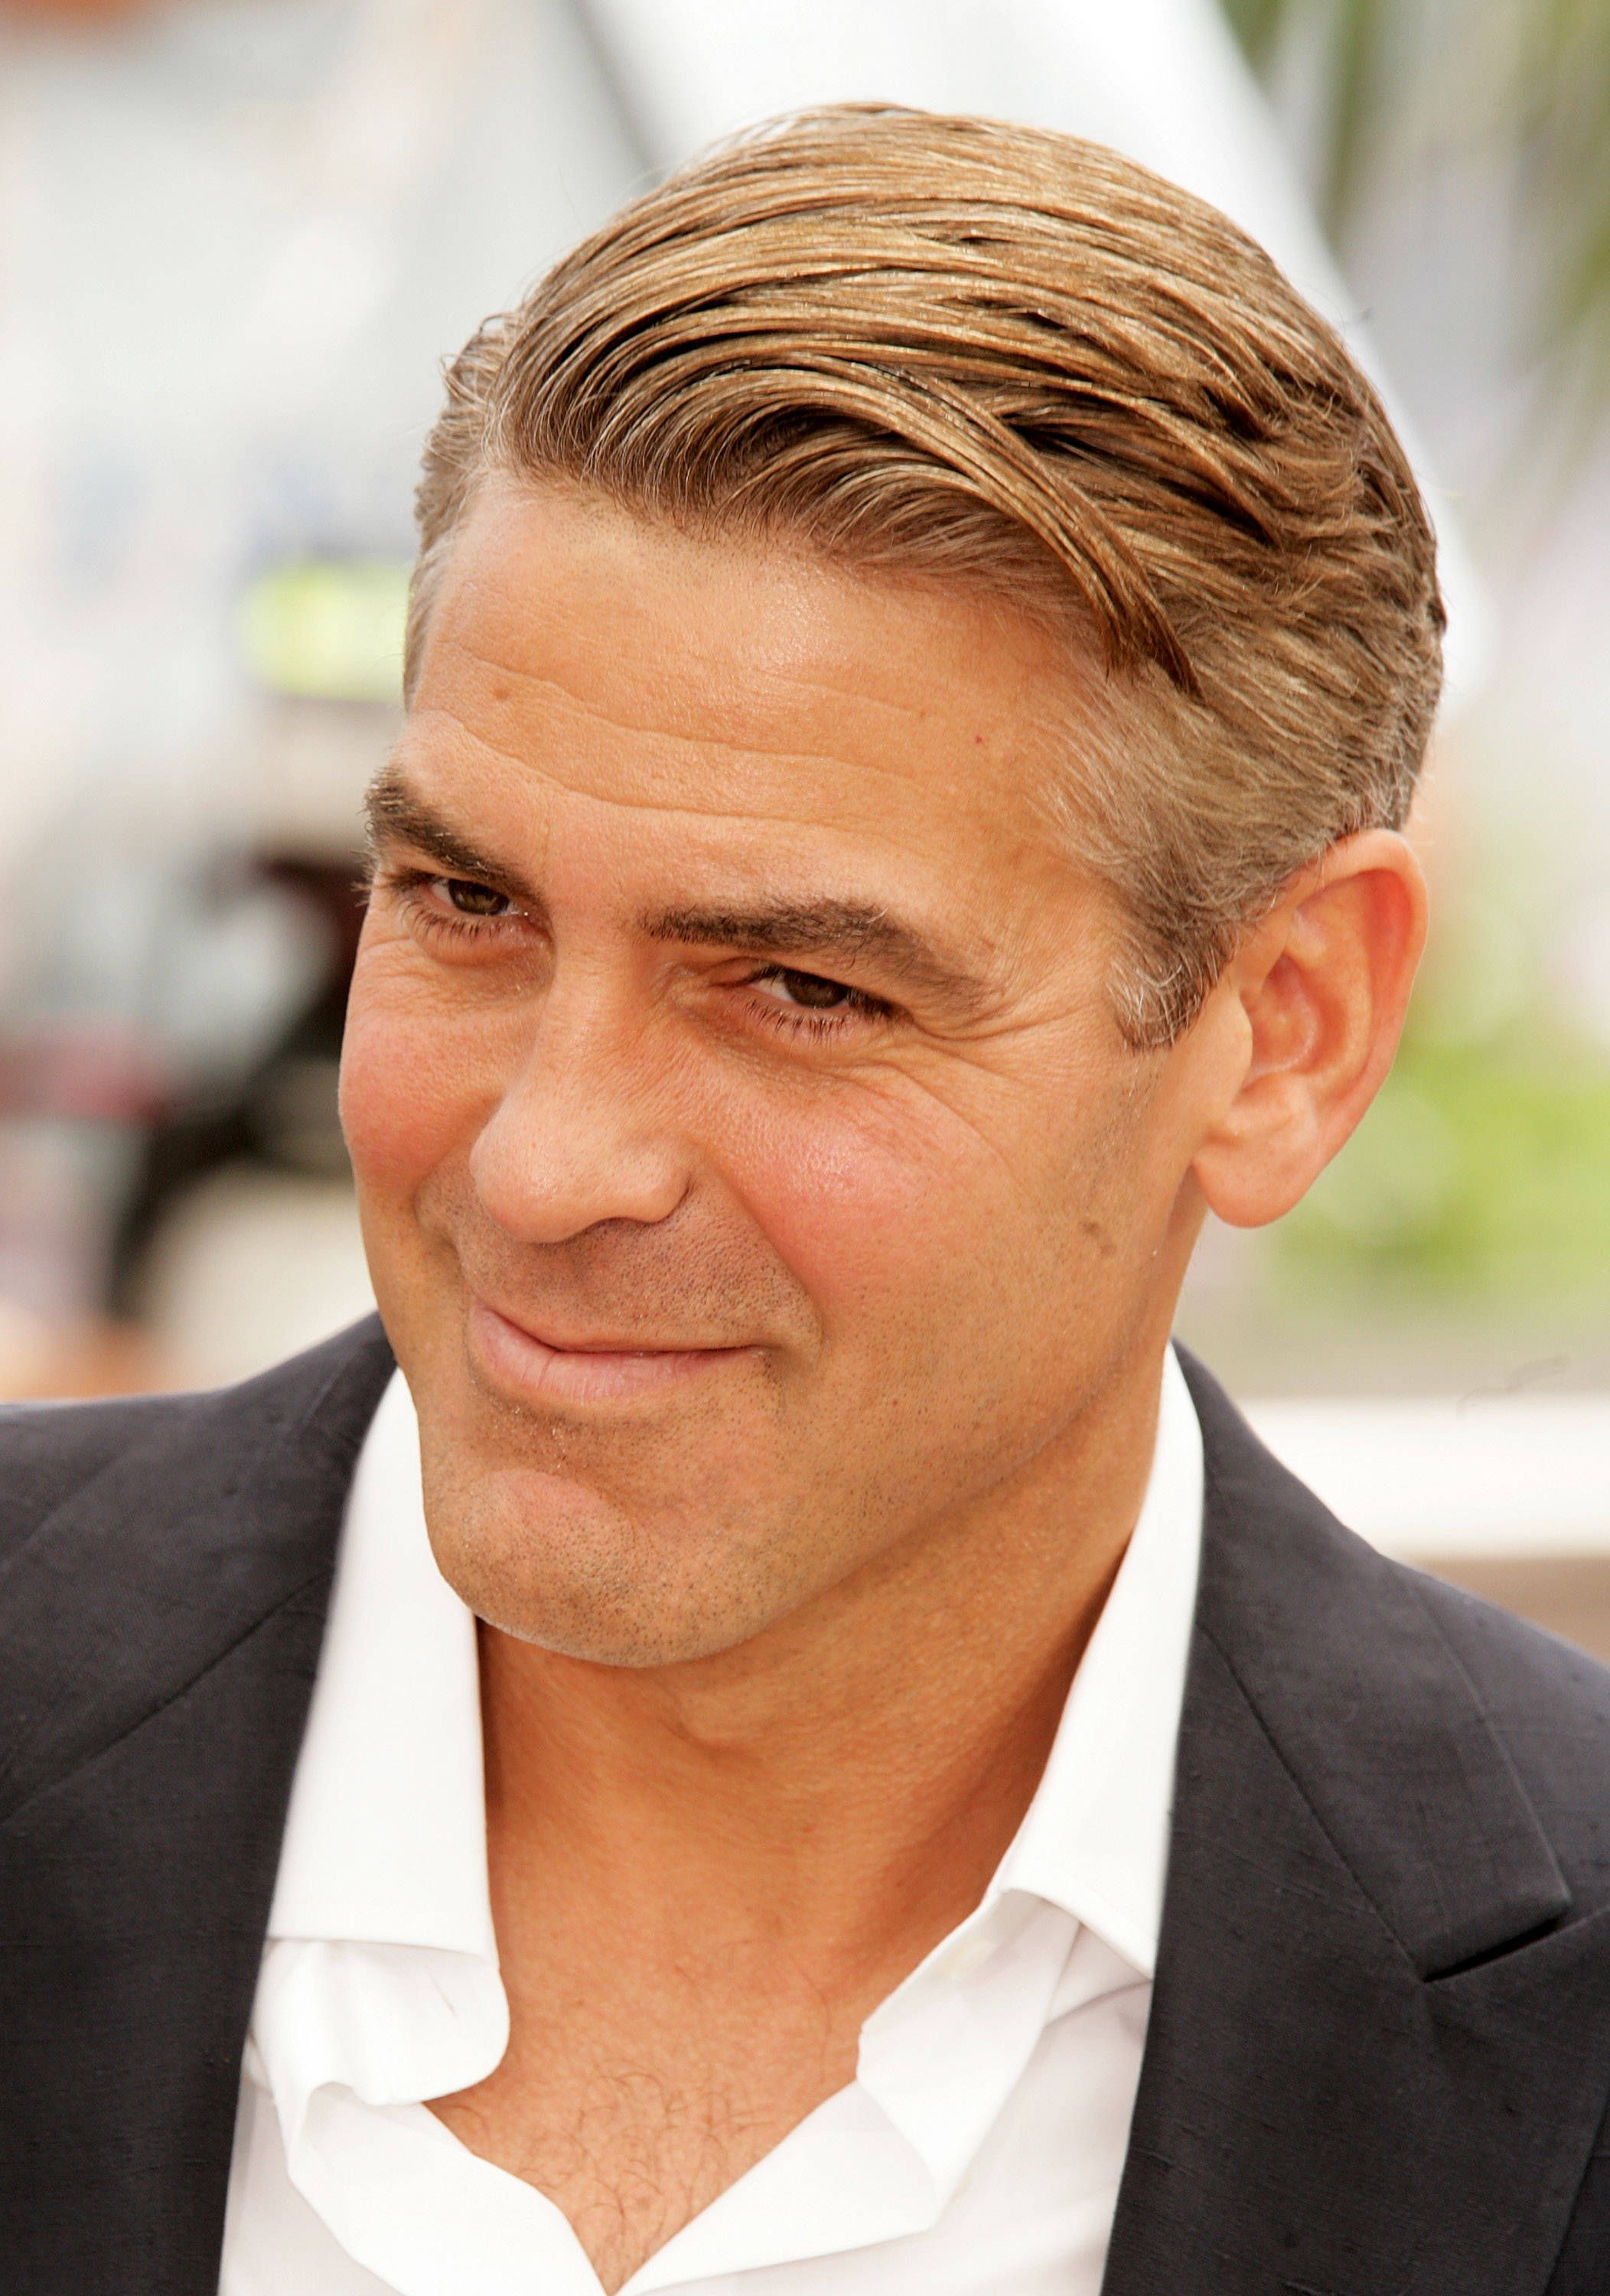 Best Male Hairstyles  Best Short Hairstyles for Men